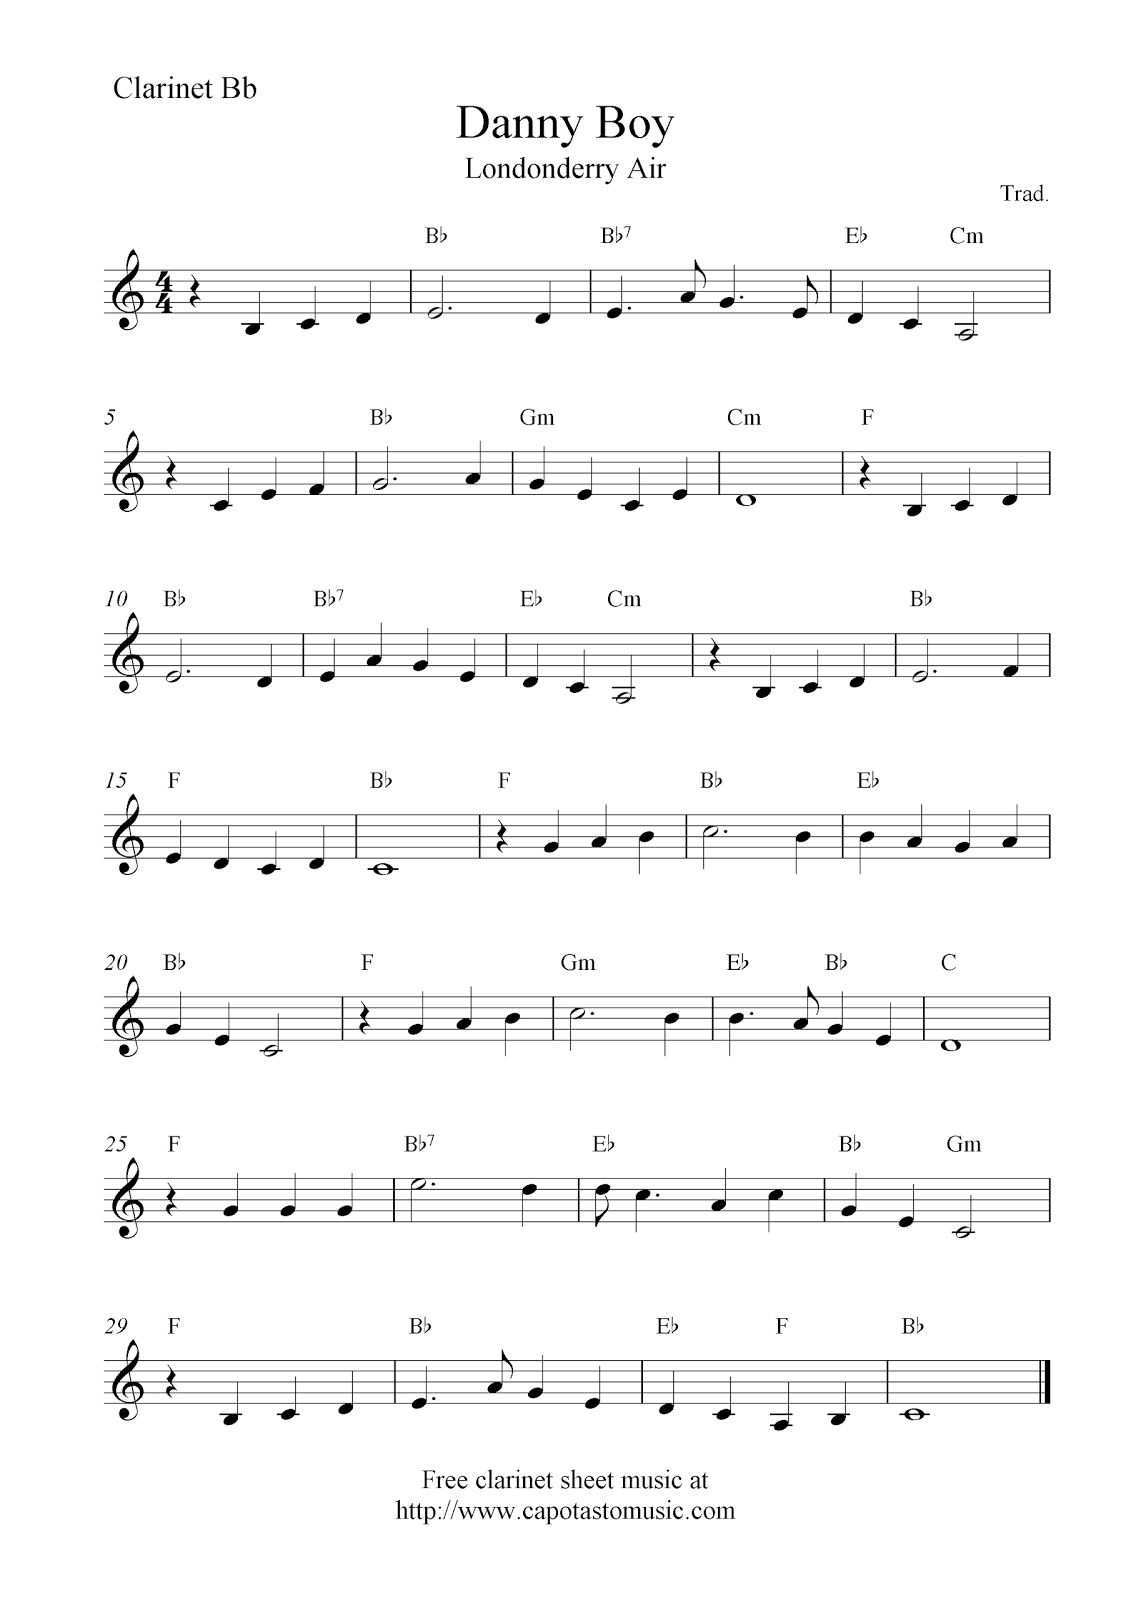 Danny Boy (Londonderry Air), Free Clarinet Sheet Music Notes - Free Sheet Music For Clarinet Printable